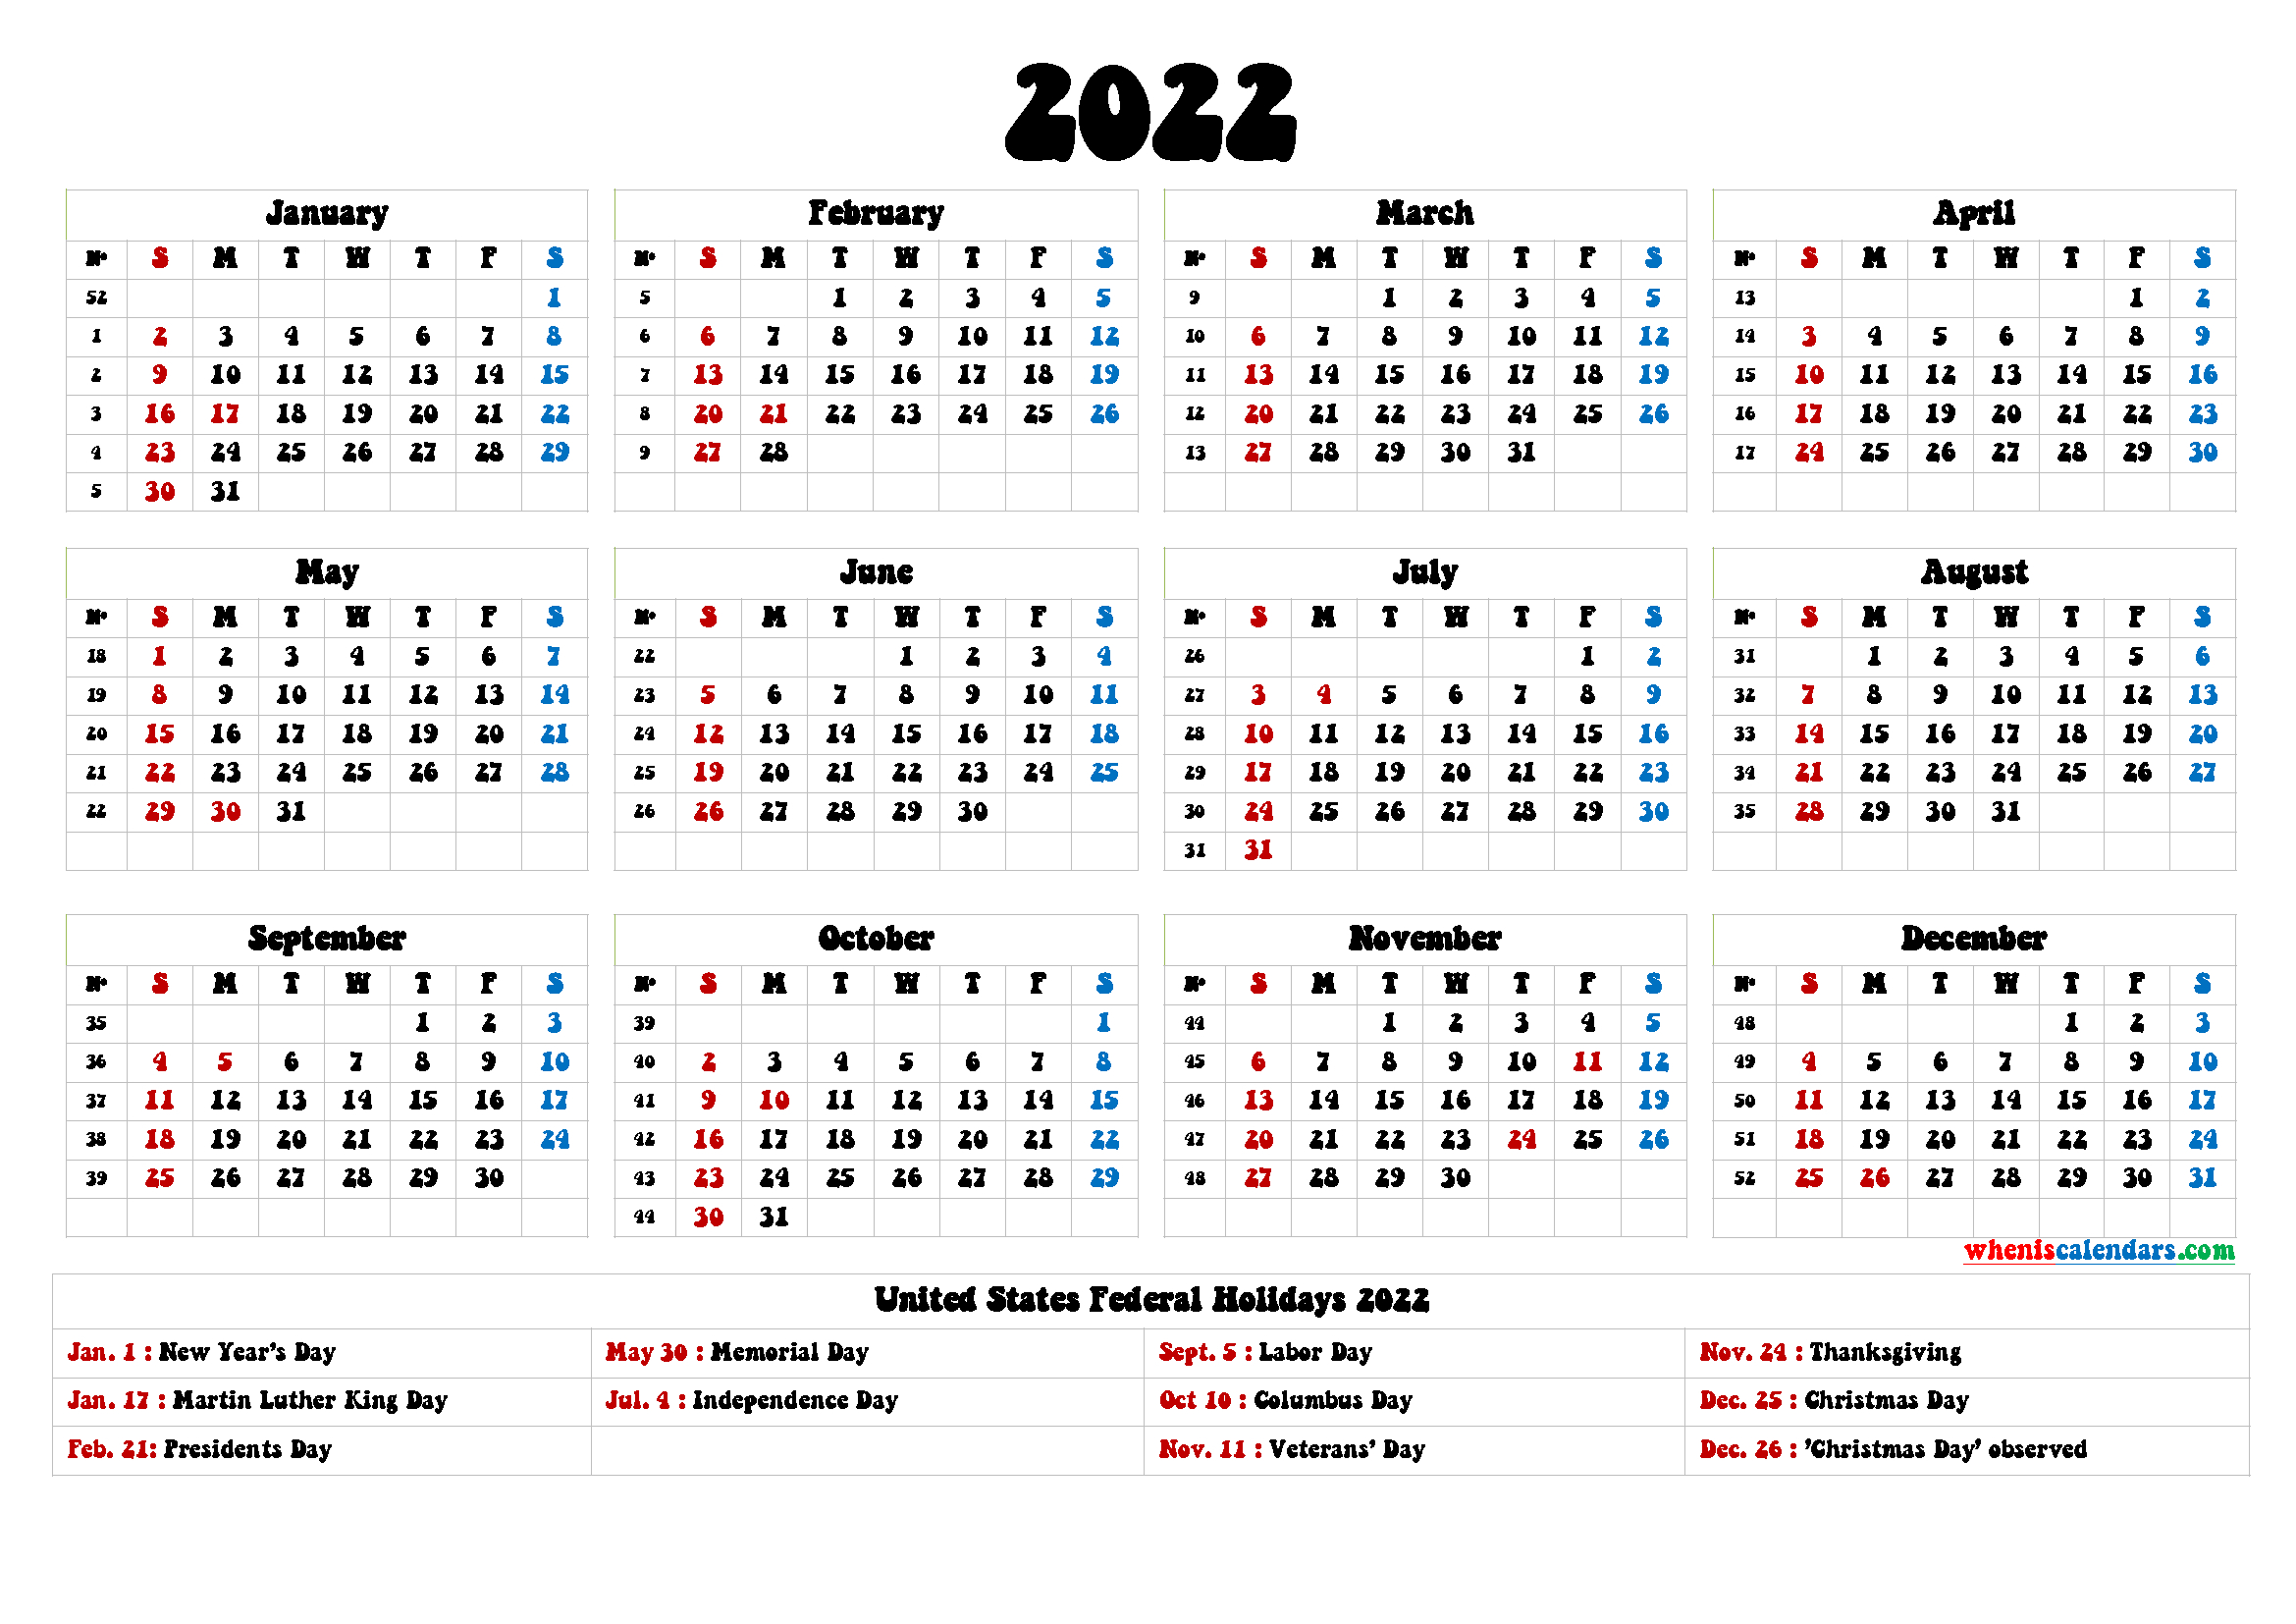 2022 Calendar With Holidays Printable - 9 Templates intended for Free Printable Julian Date Calendar 2022